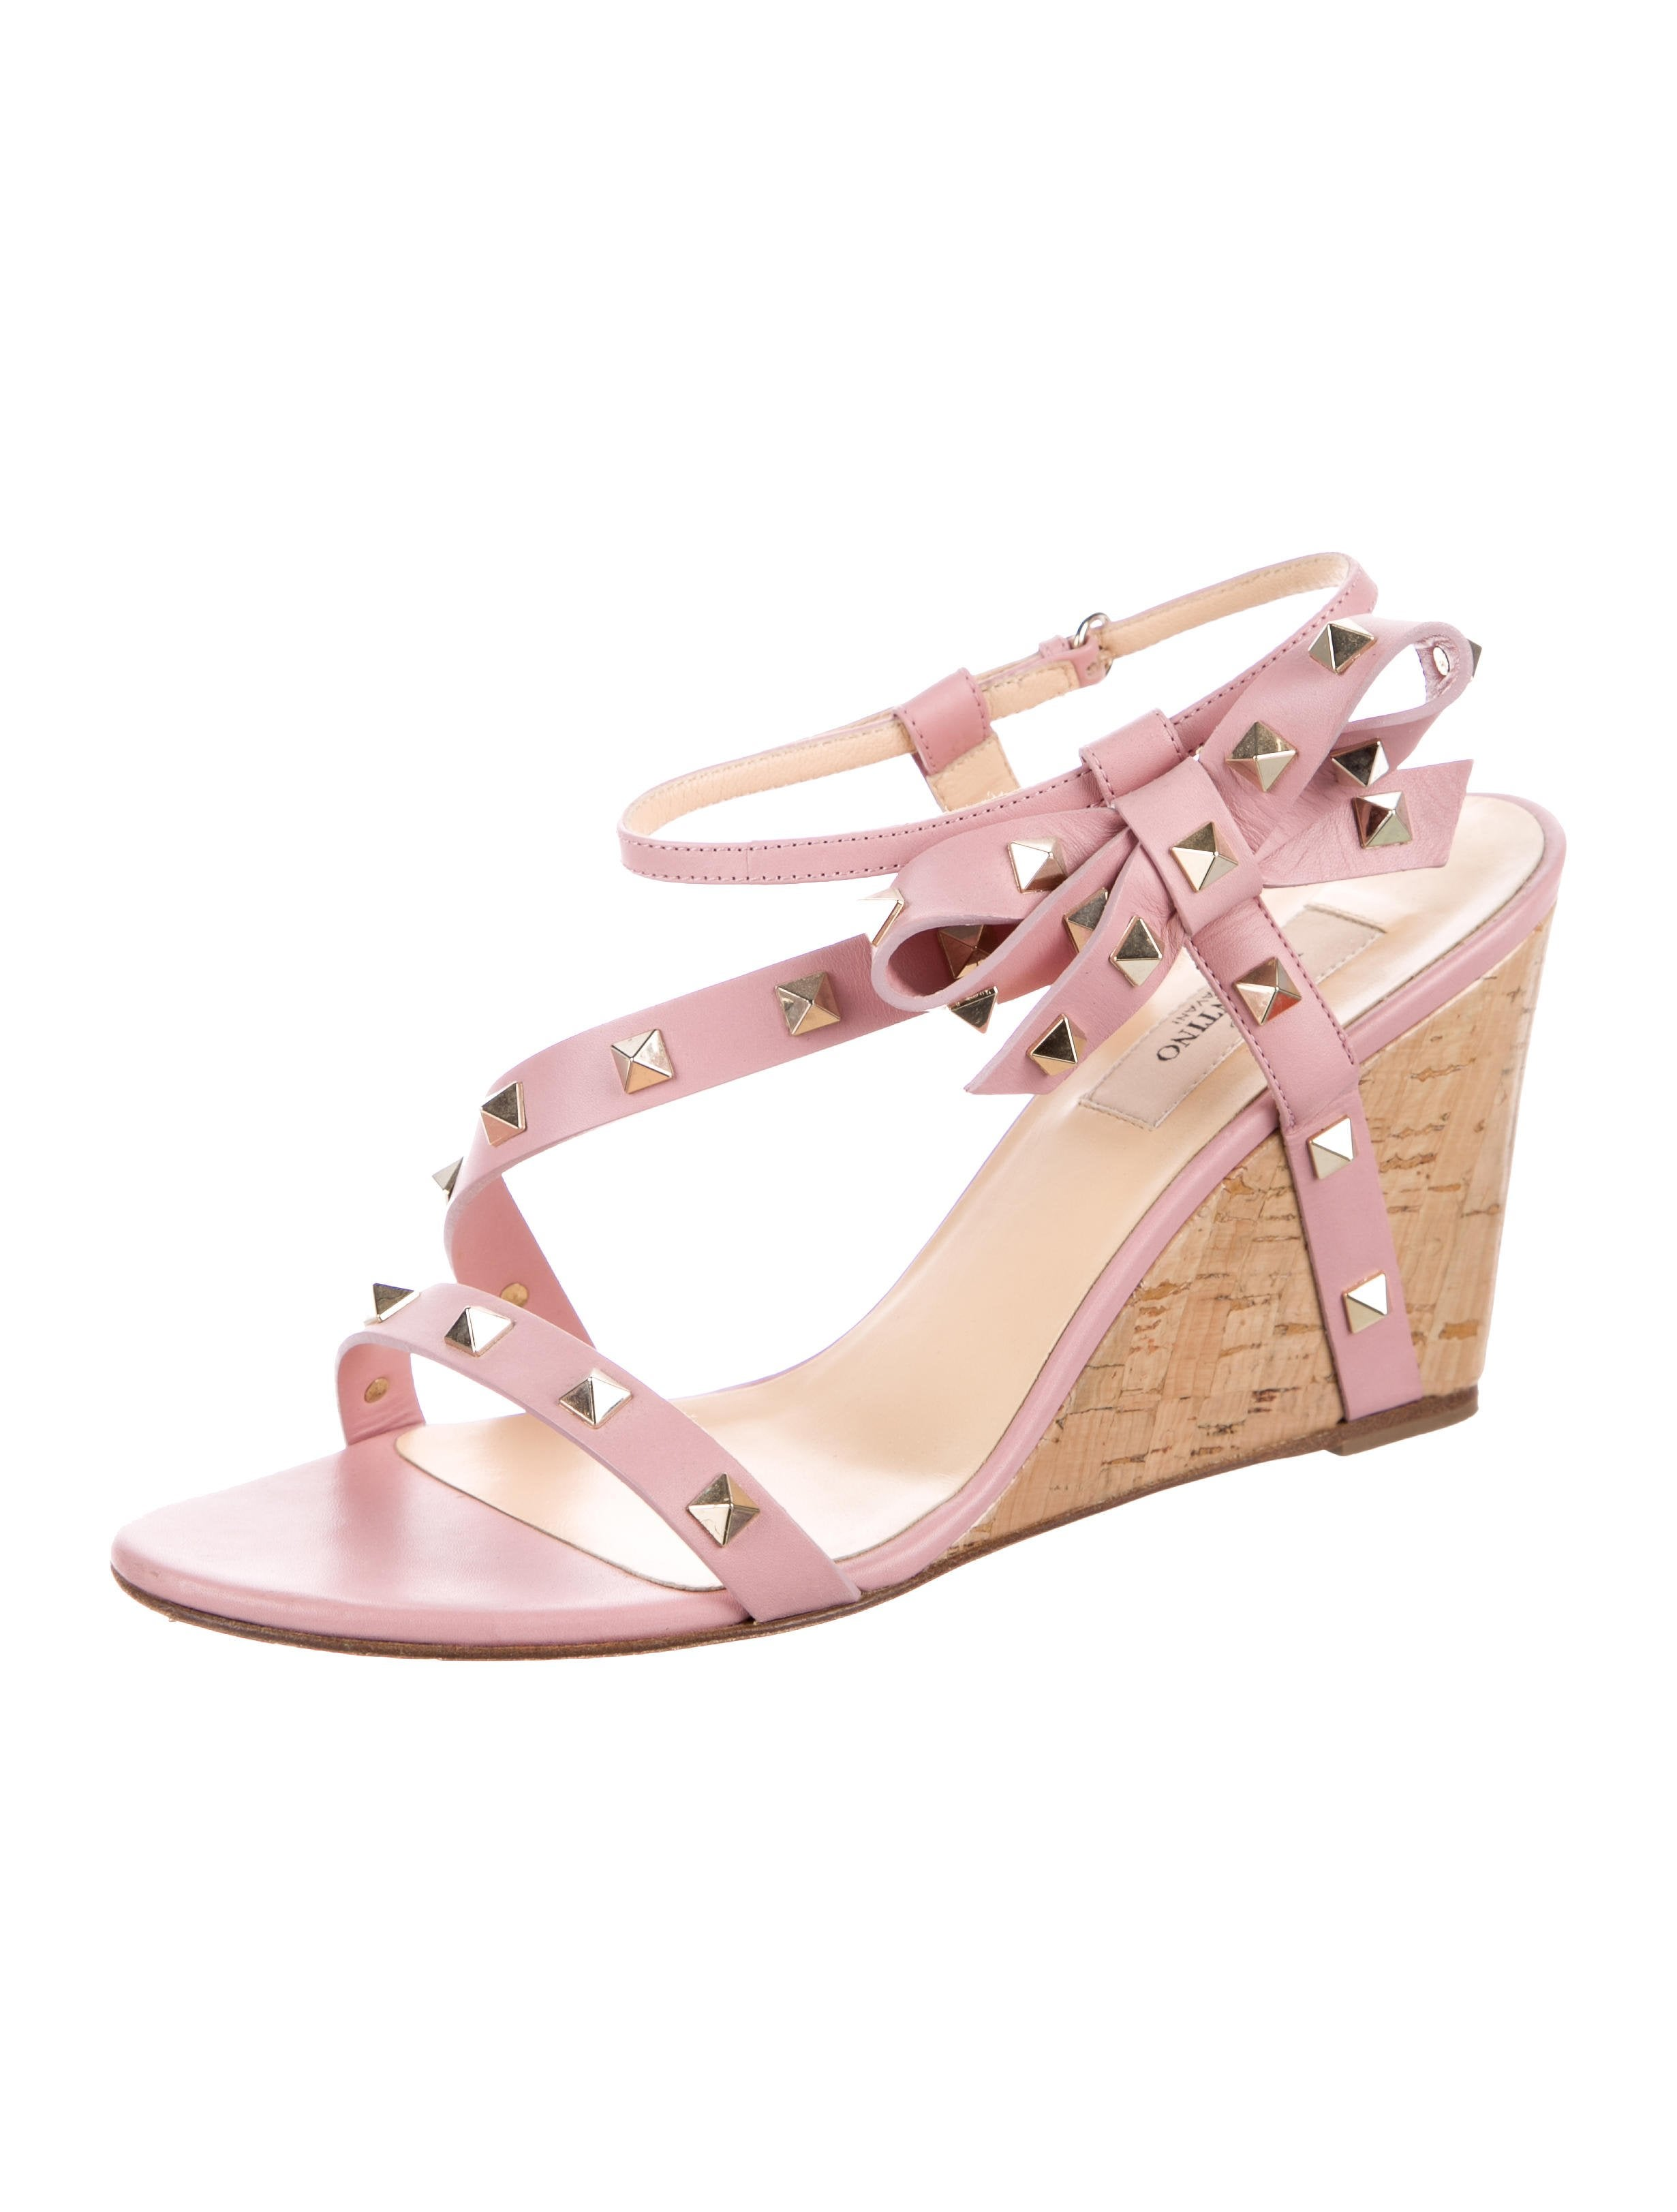 Valentino Bow-Accented Rockstud Wedges cheap sale visit new oCDIq5DXDr